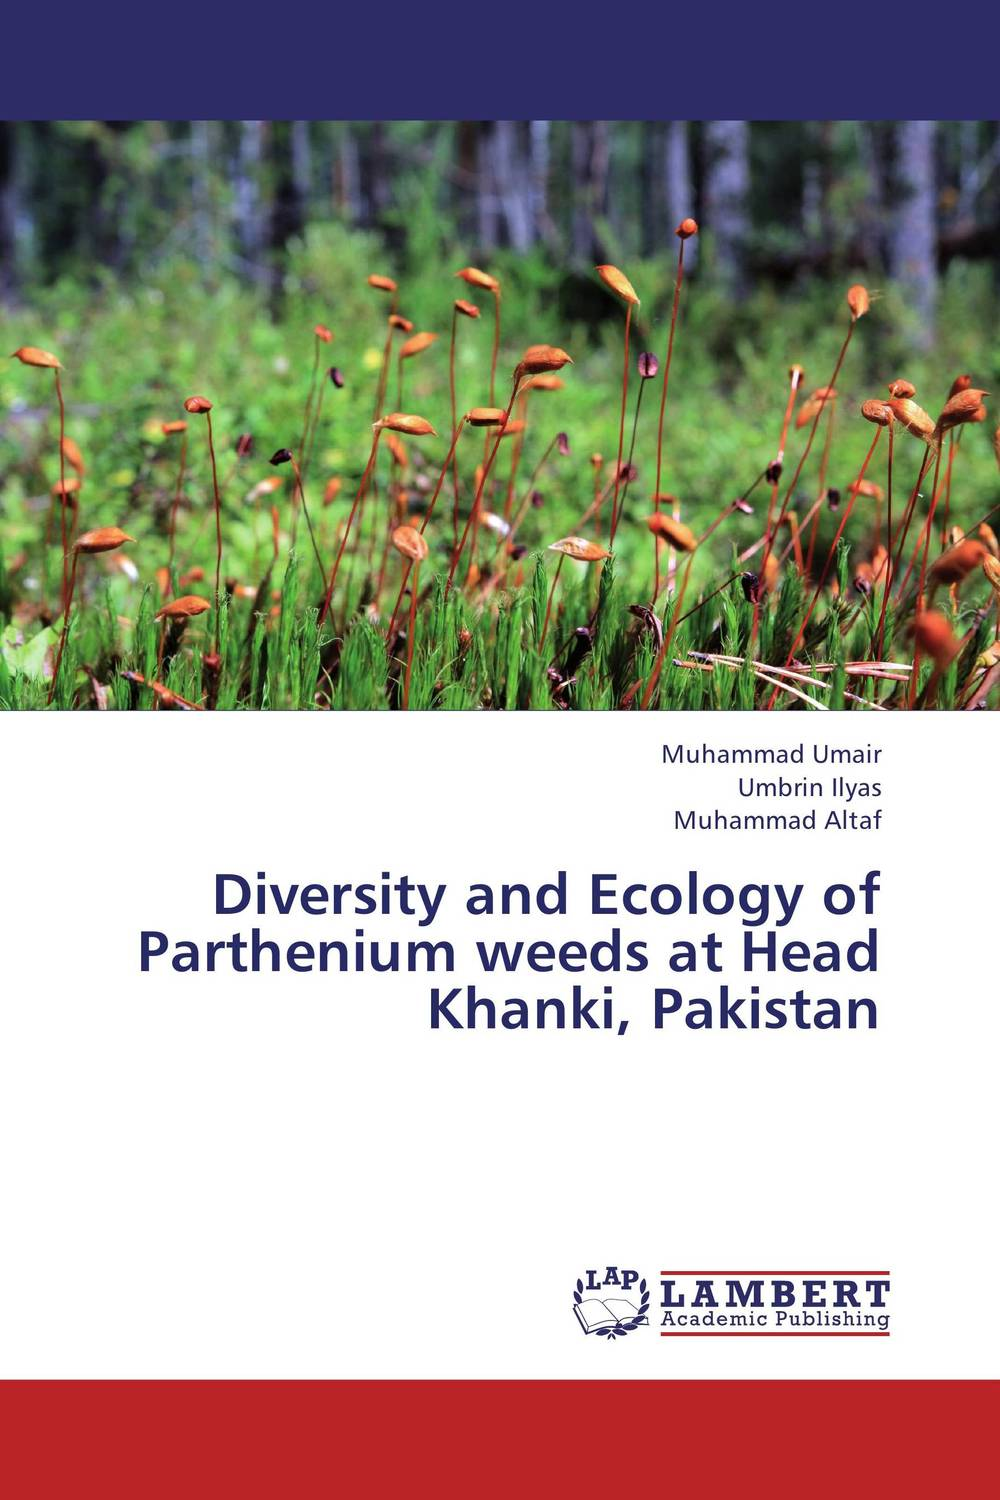 Diversity and Ecology of Parthenium weeds at Head Khanki, Pakistan linguistic diversity and social justice